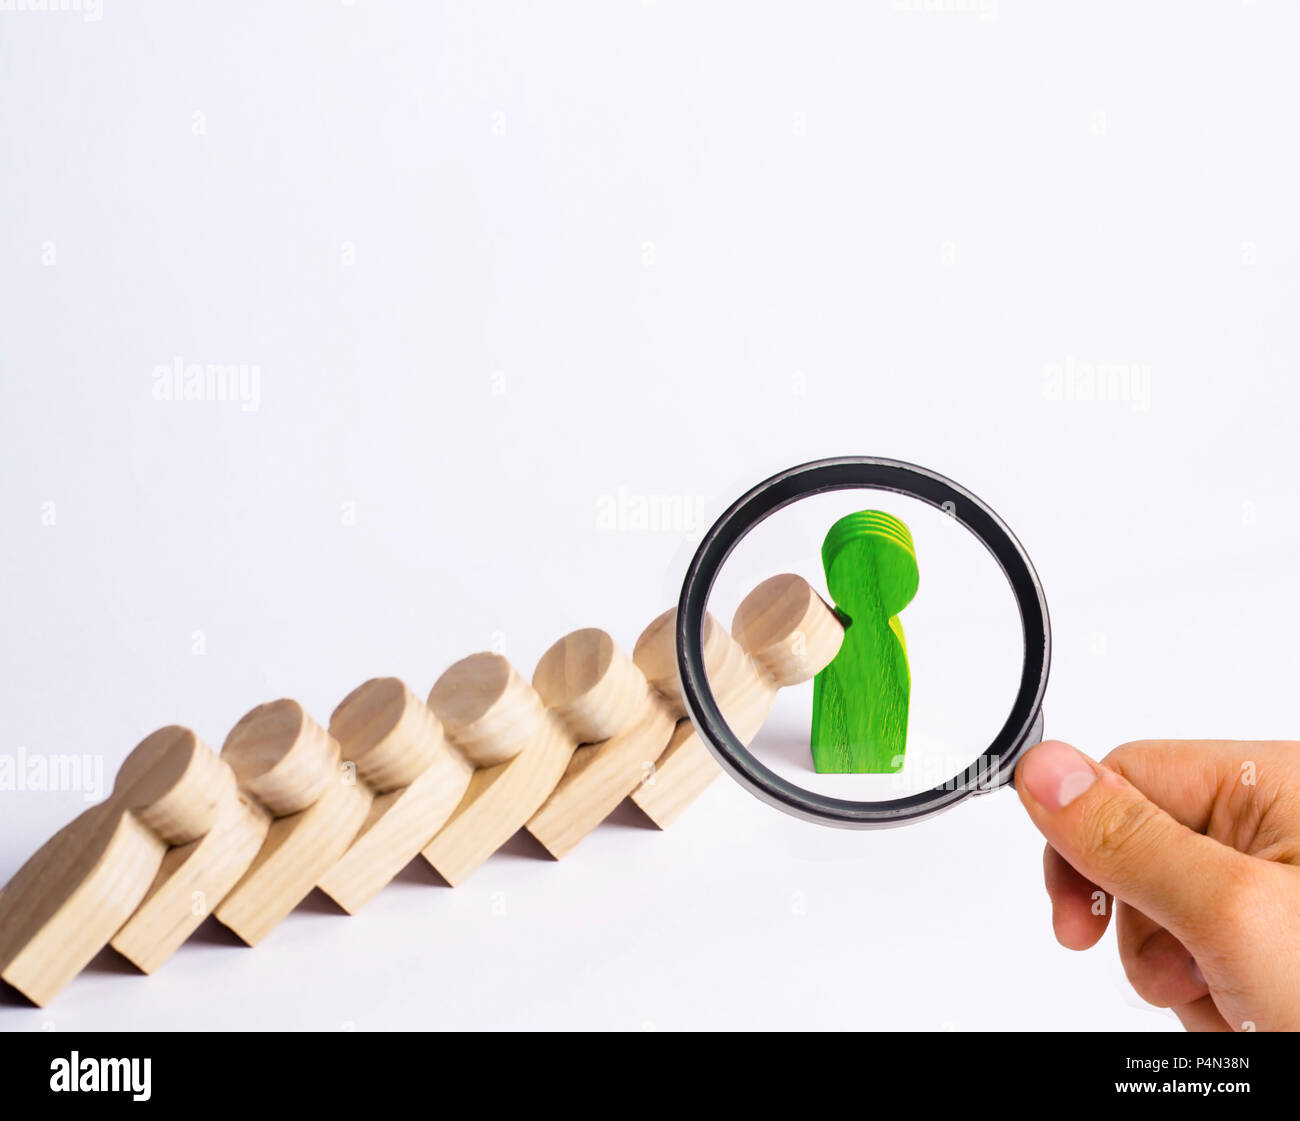 People in line fall like dominoes. Green man stops the fall of people as dominoes. The concept of durability and strength, business ideas. Willpower,  - Stock Image